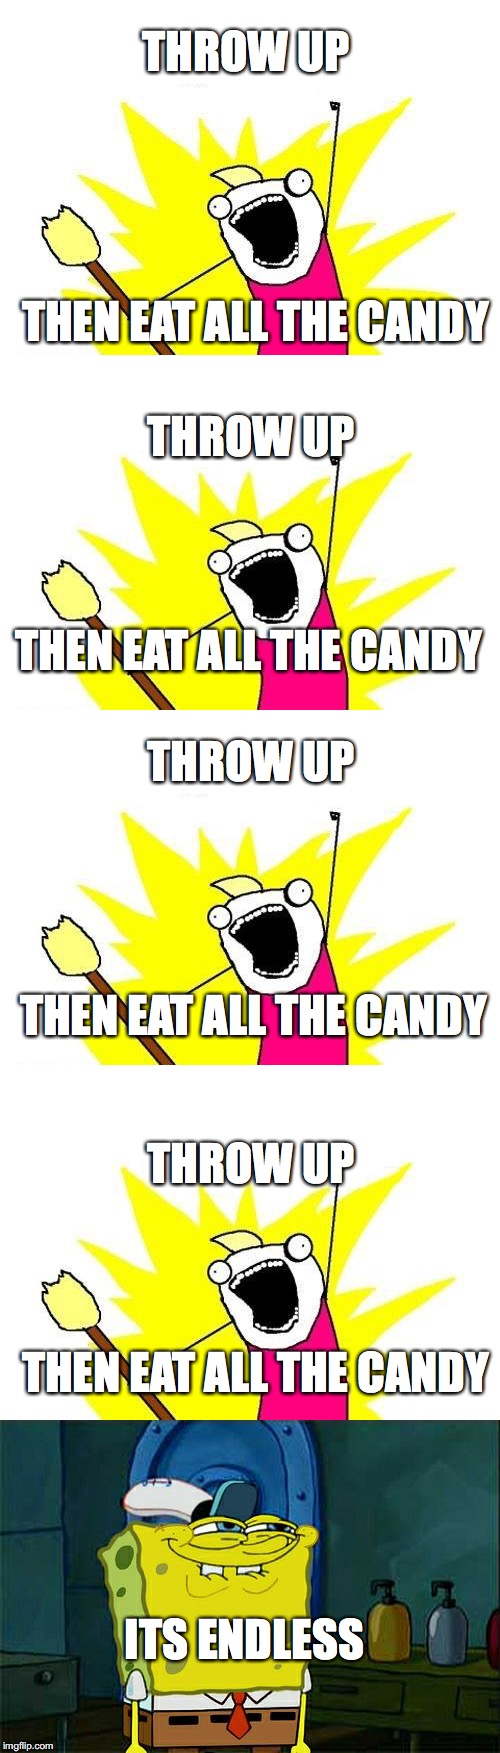 THROW UP THEN EAT ALL THE CANDY THROW UP THEN EAT ALL THE CANDY THROW UP THEN EAT ALL THE CANDY THROW UP THEN EAT ALL THE CANDY ITS ENDLESS | made w/ Imgflip meme maker